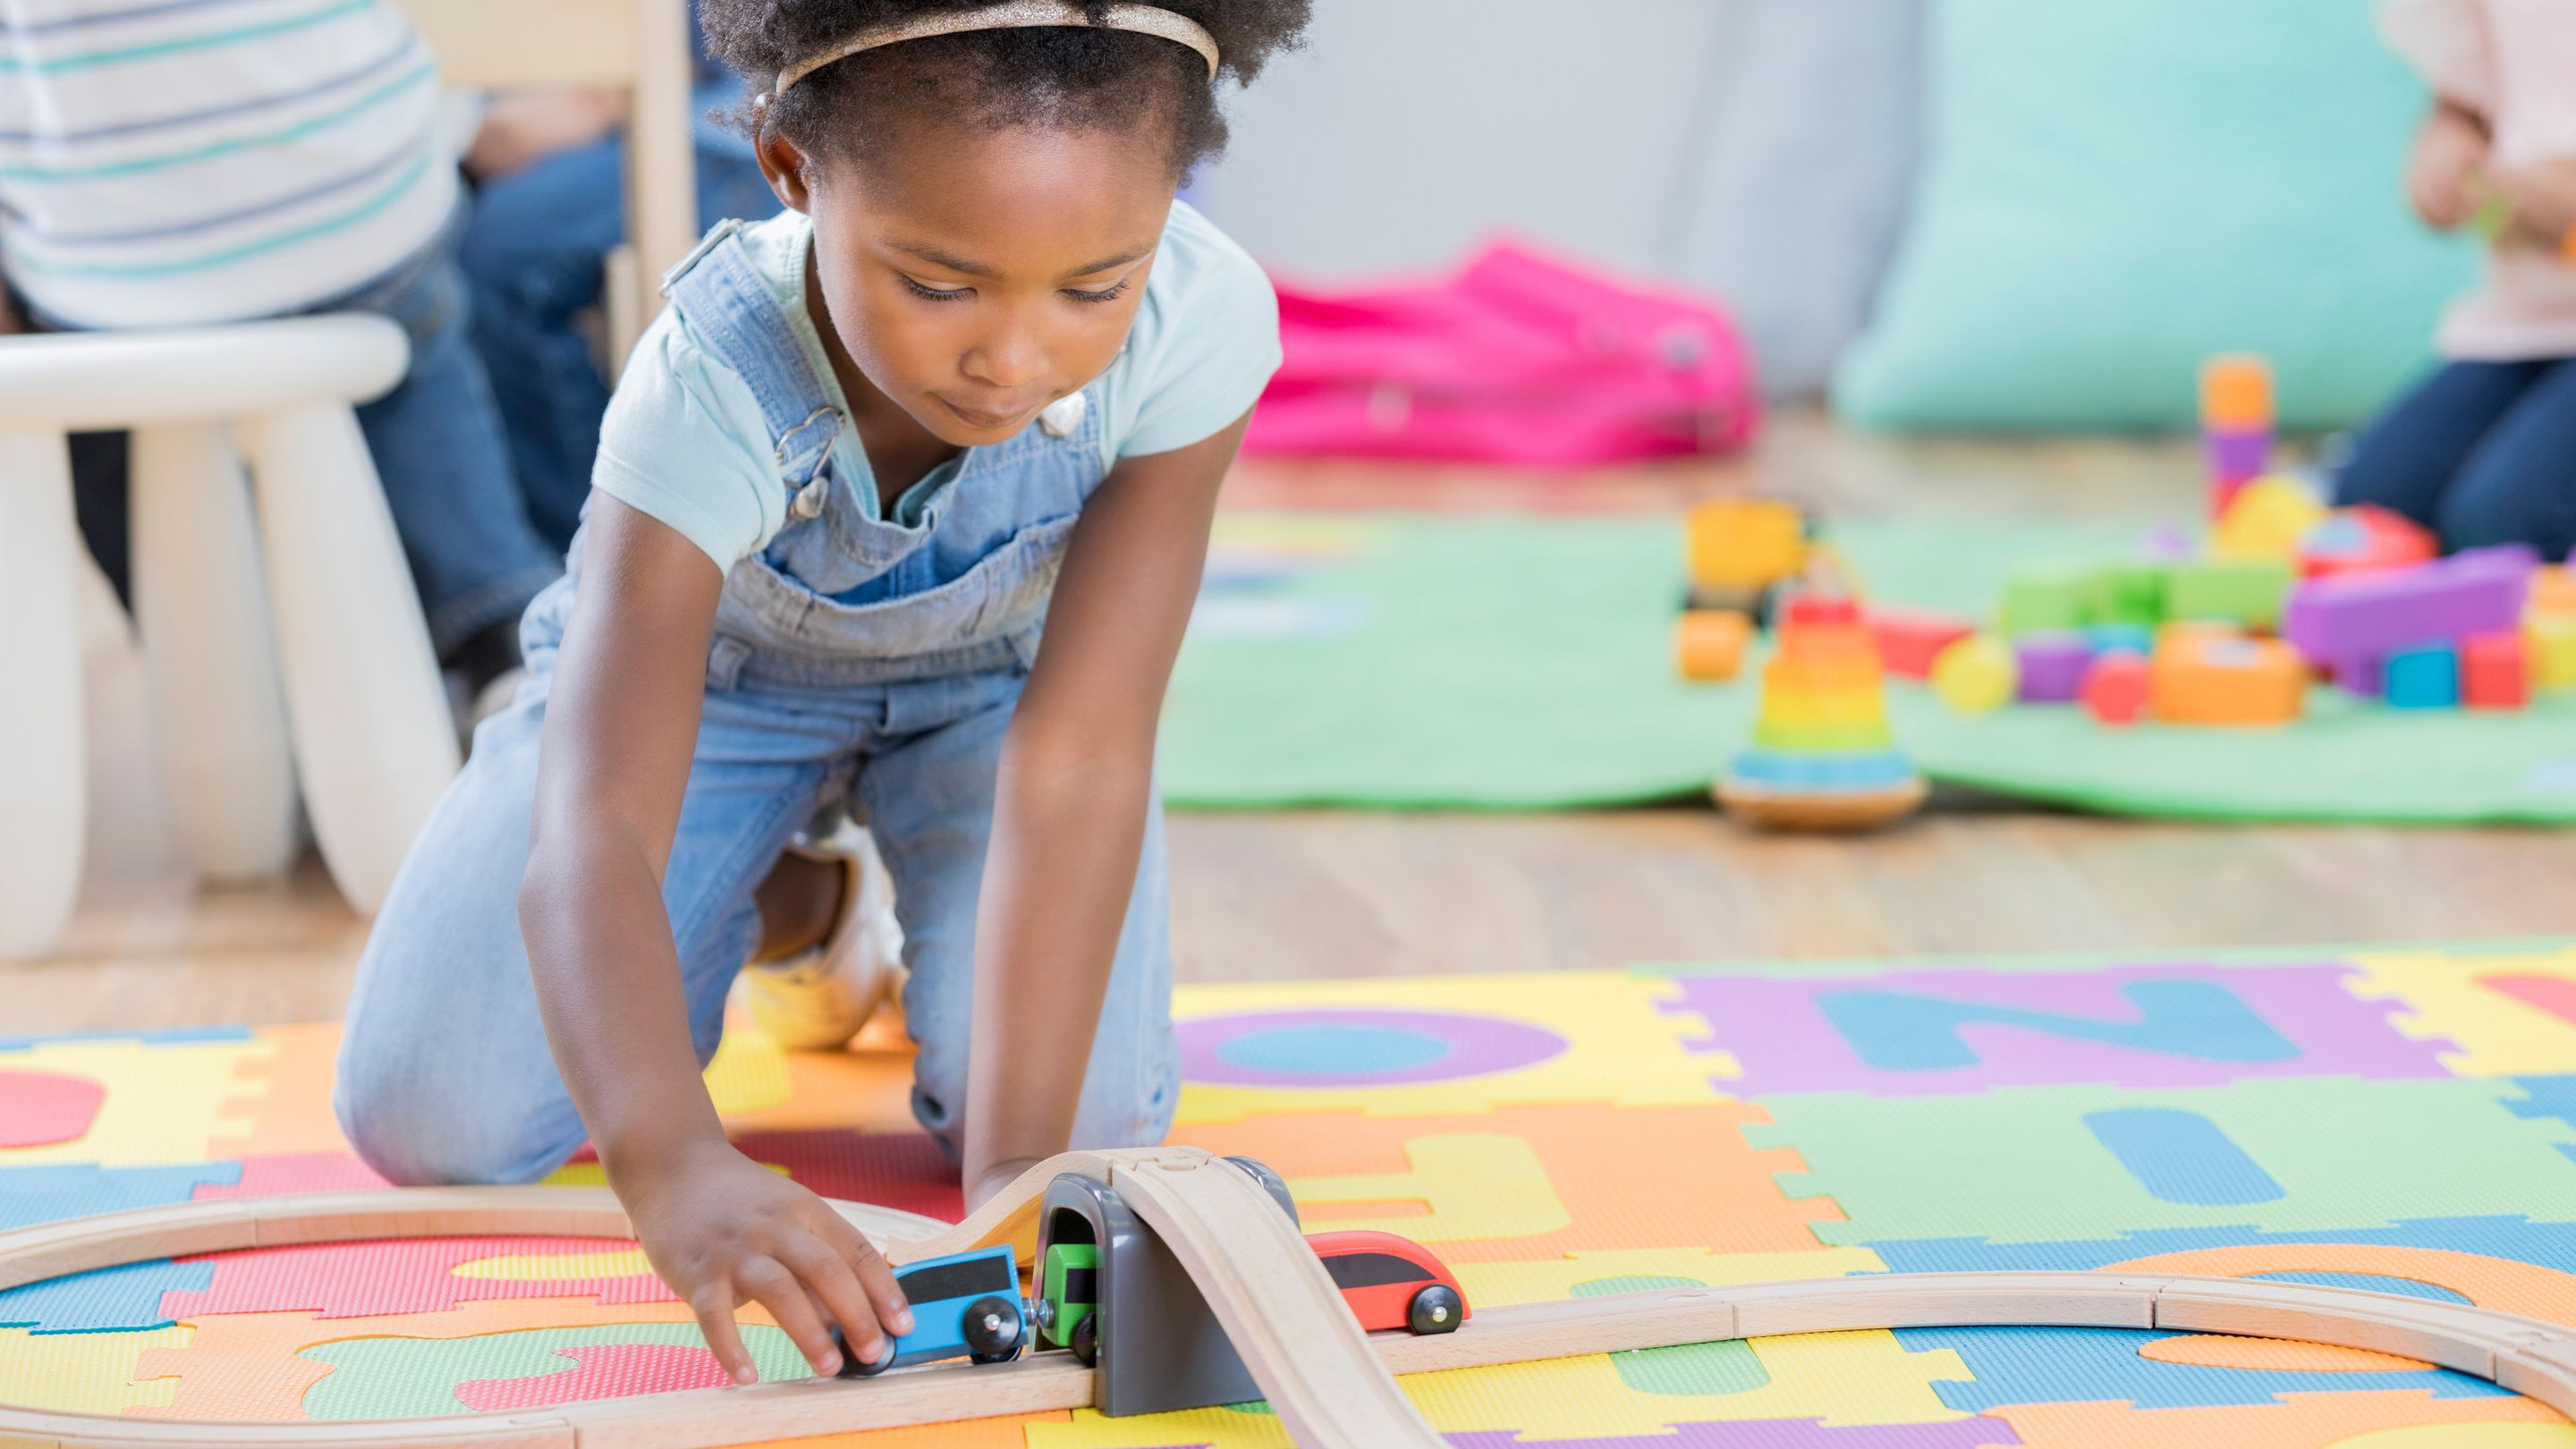 Key Aspects of Play in Early Education